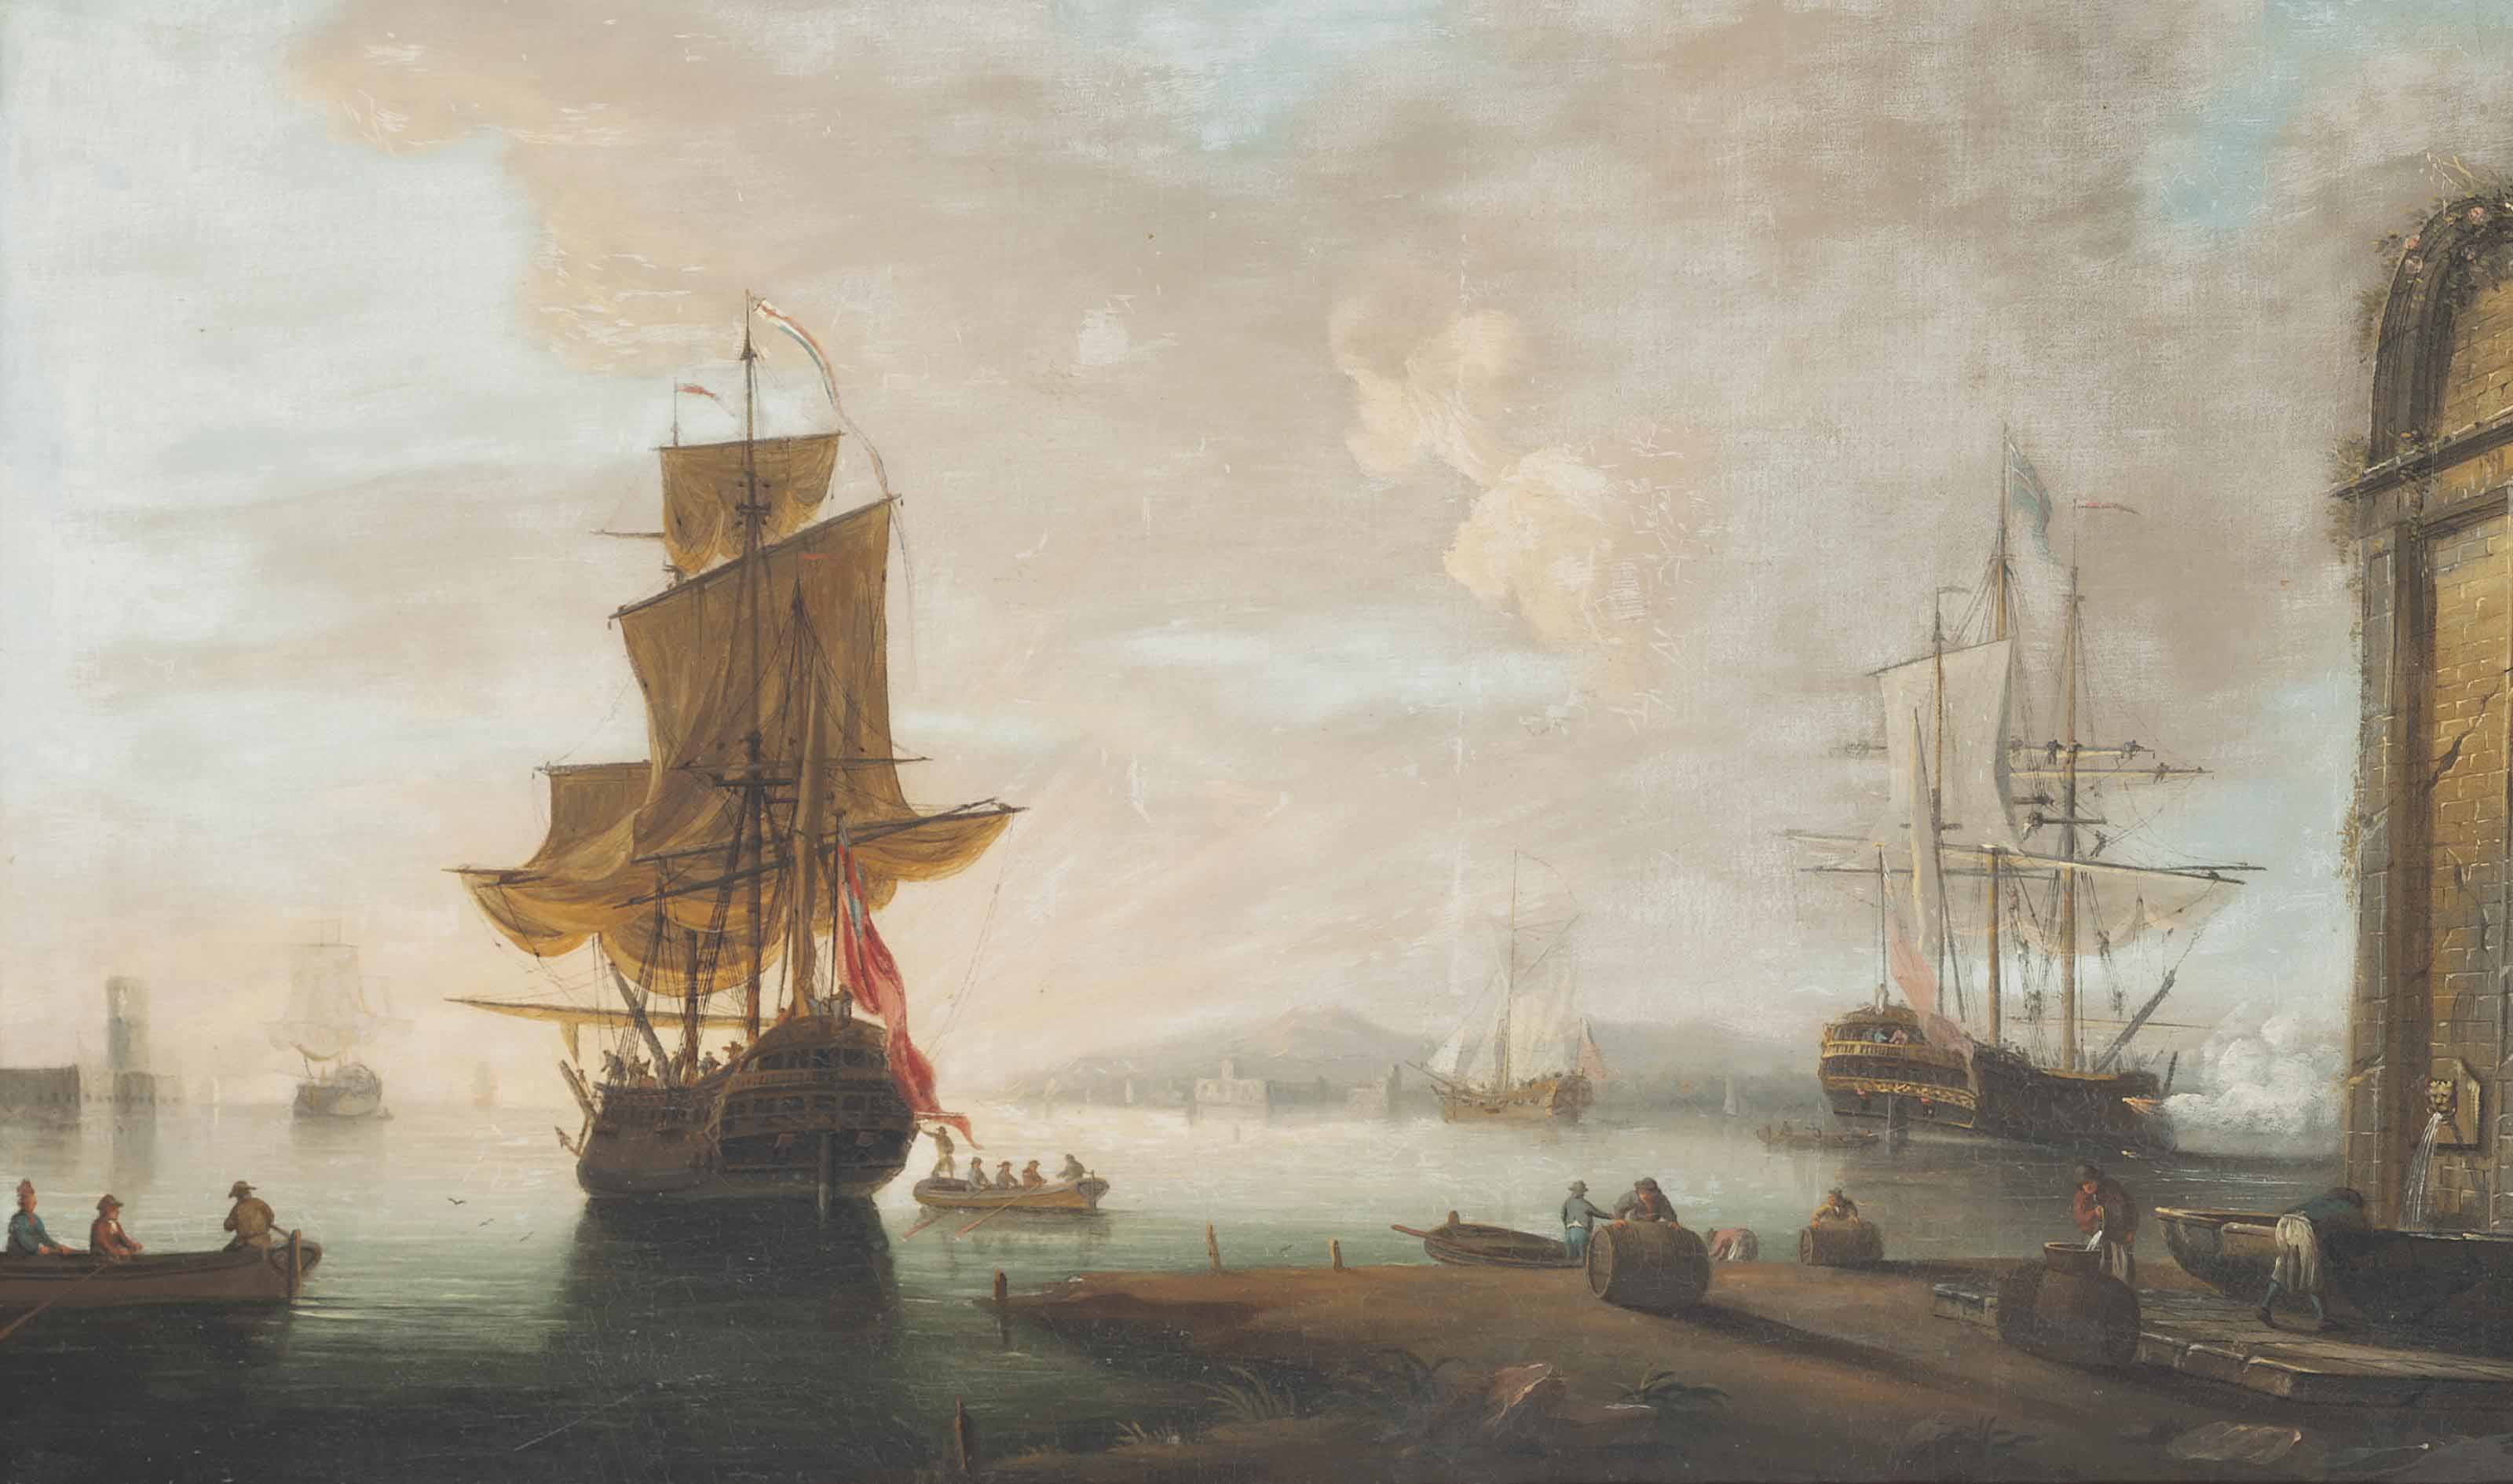 Two British men-o'war and an Admiralty yacht preparing to get underway from the port of Leghorn, with one firing a salute to announce their departure